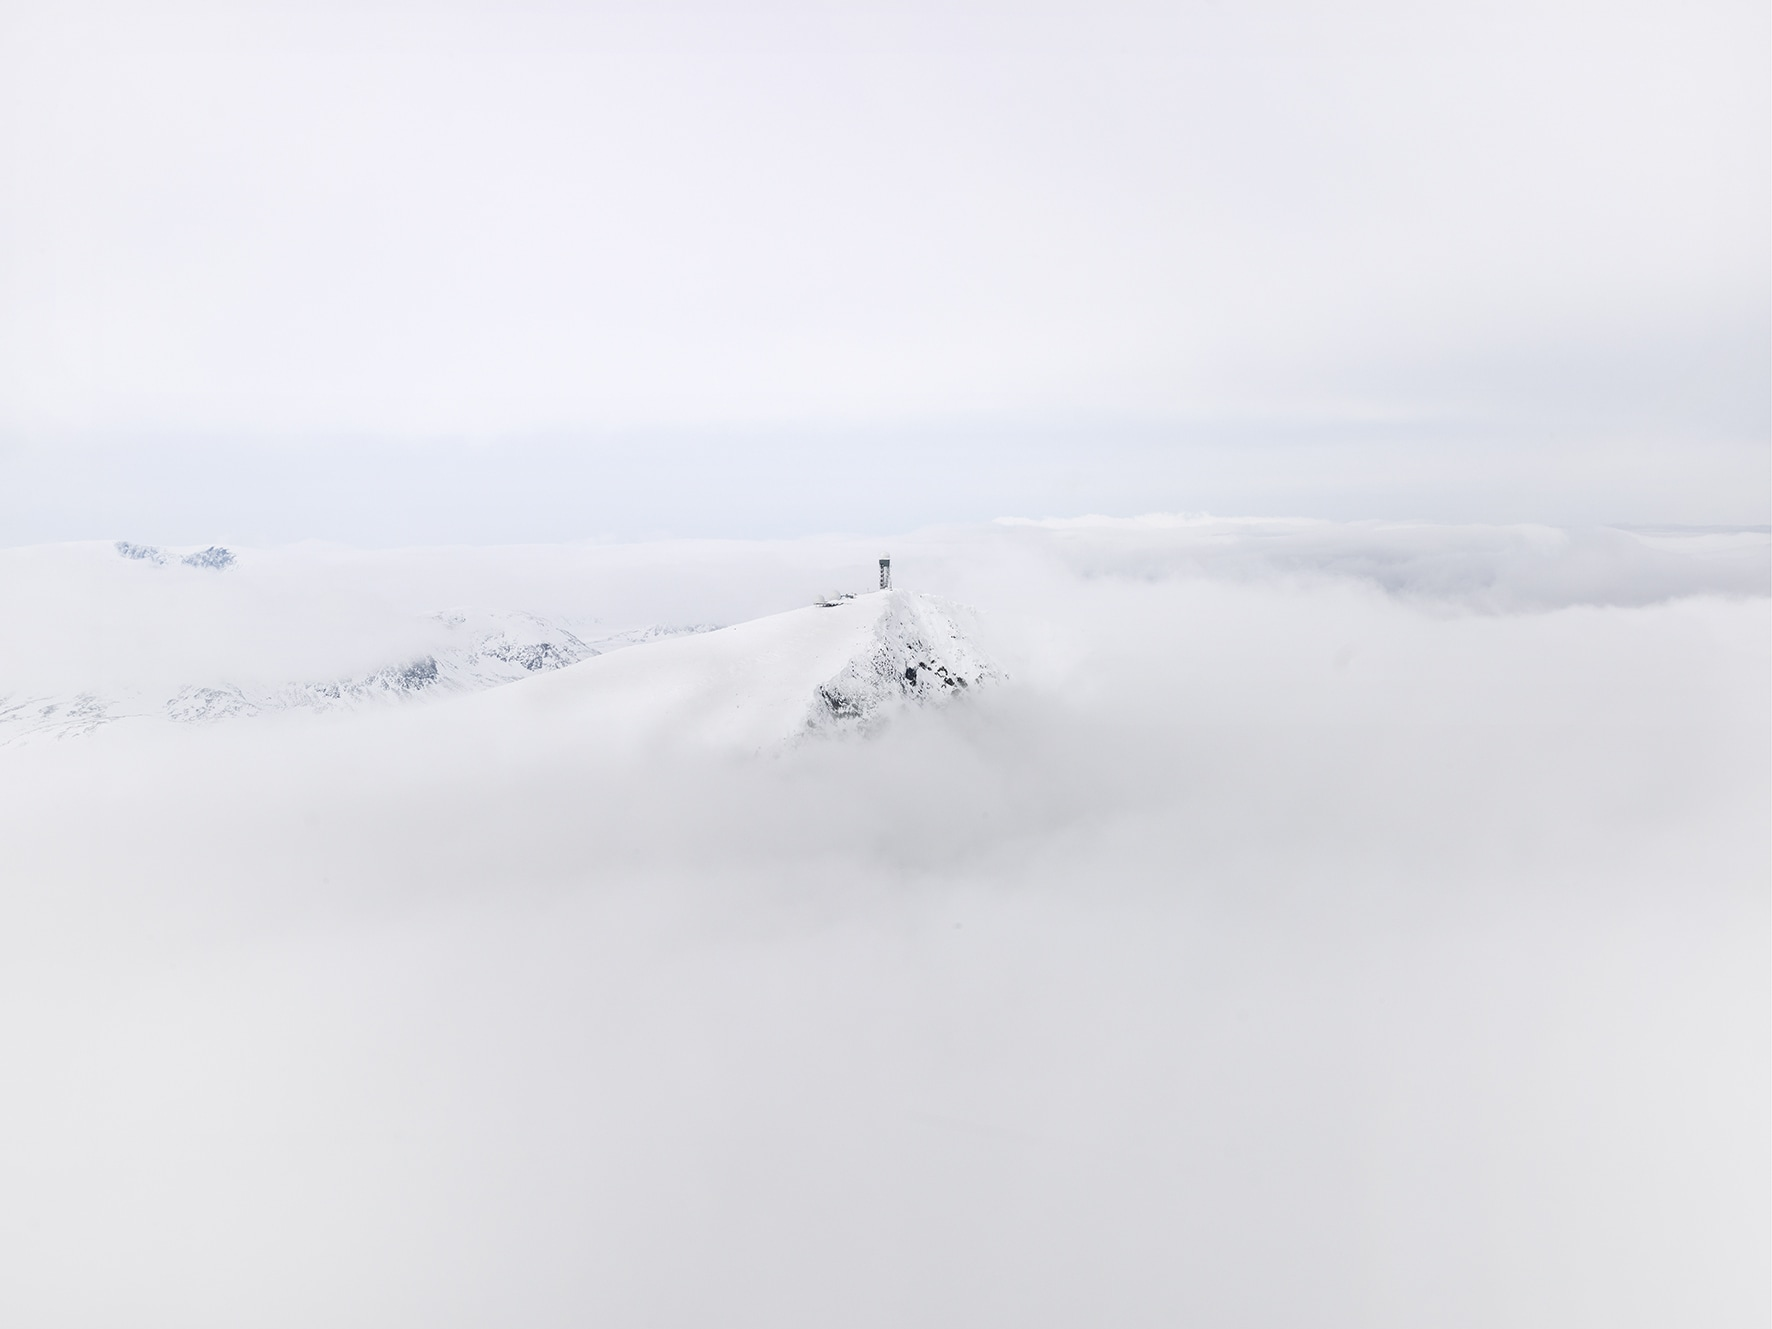 Lab 1, Labrador, Canada, 2013. From The Tower Series. Donovan Wylie.